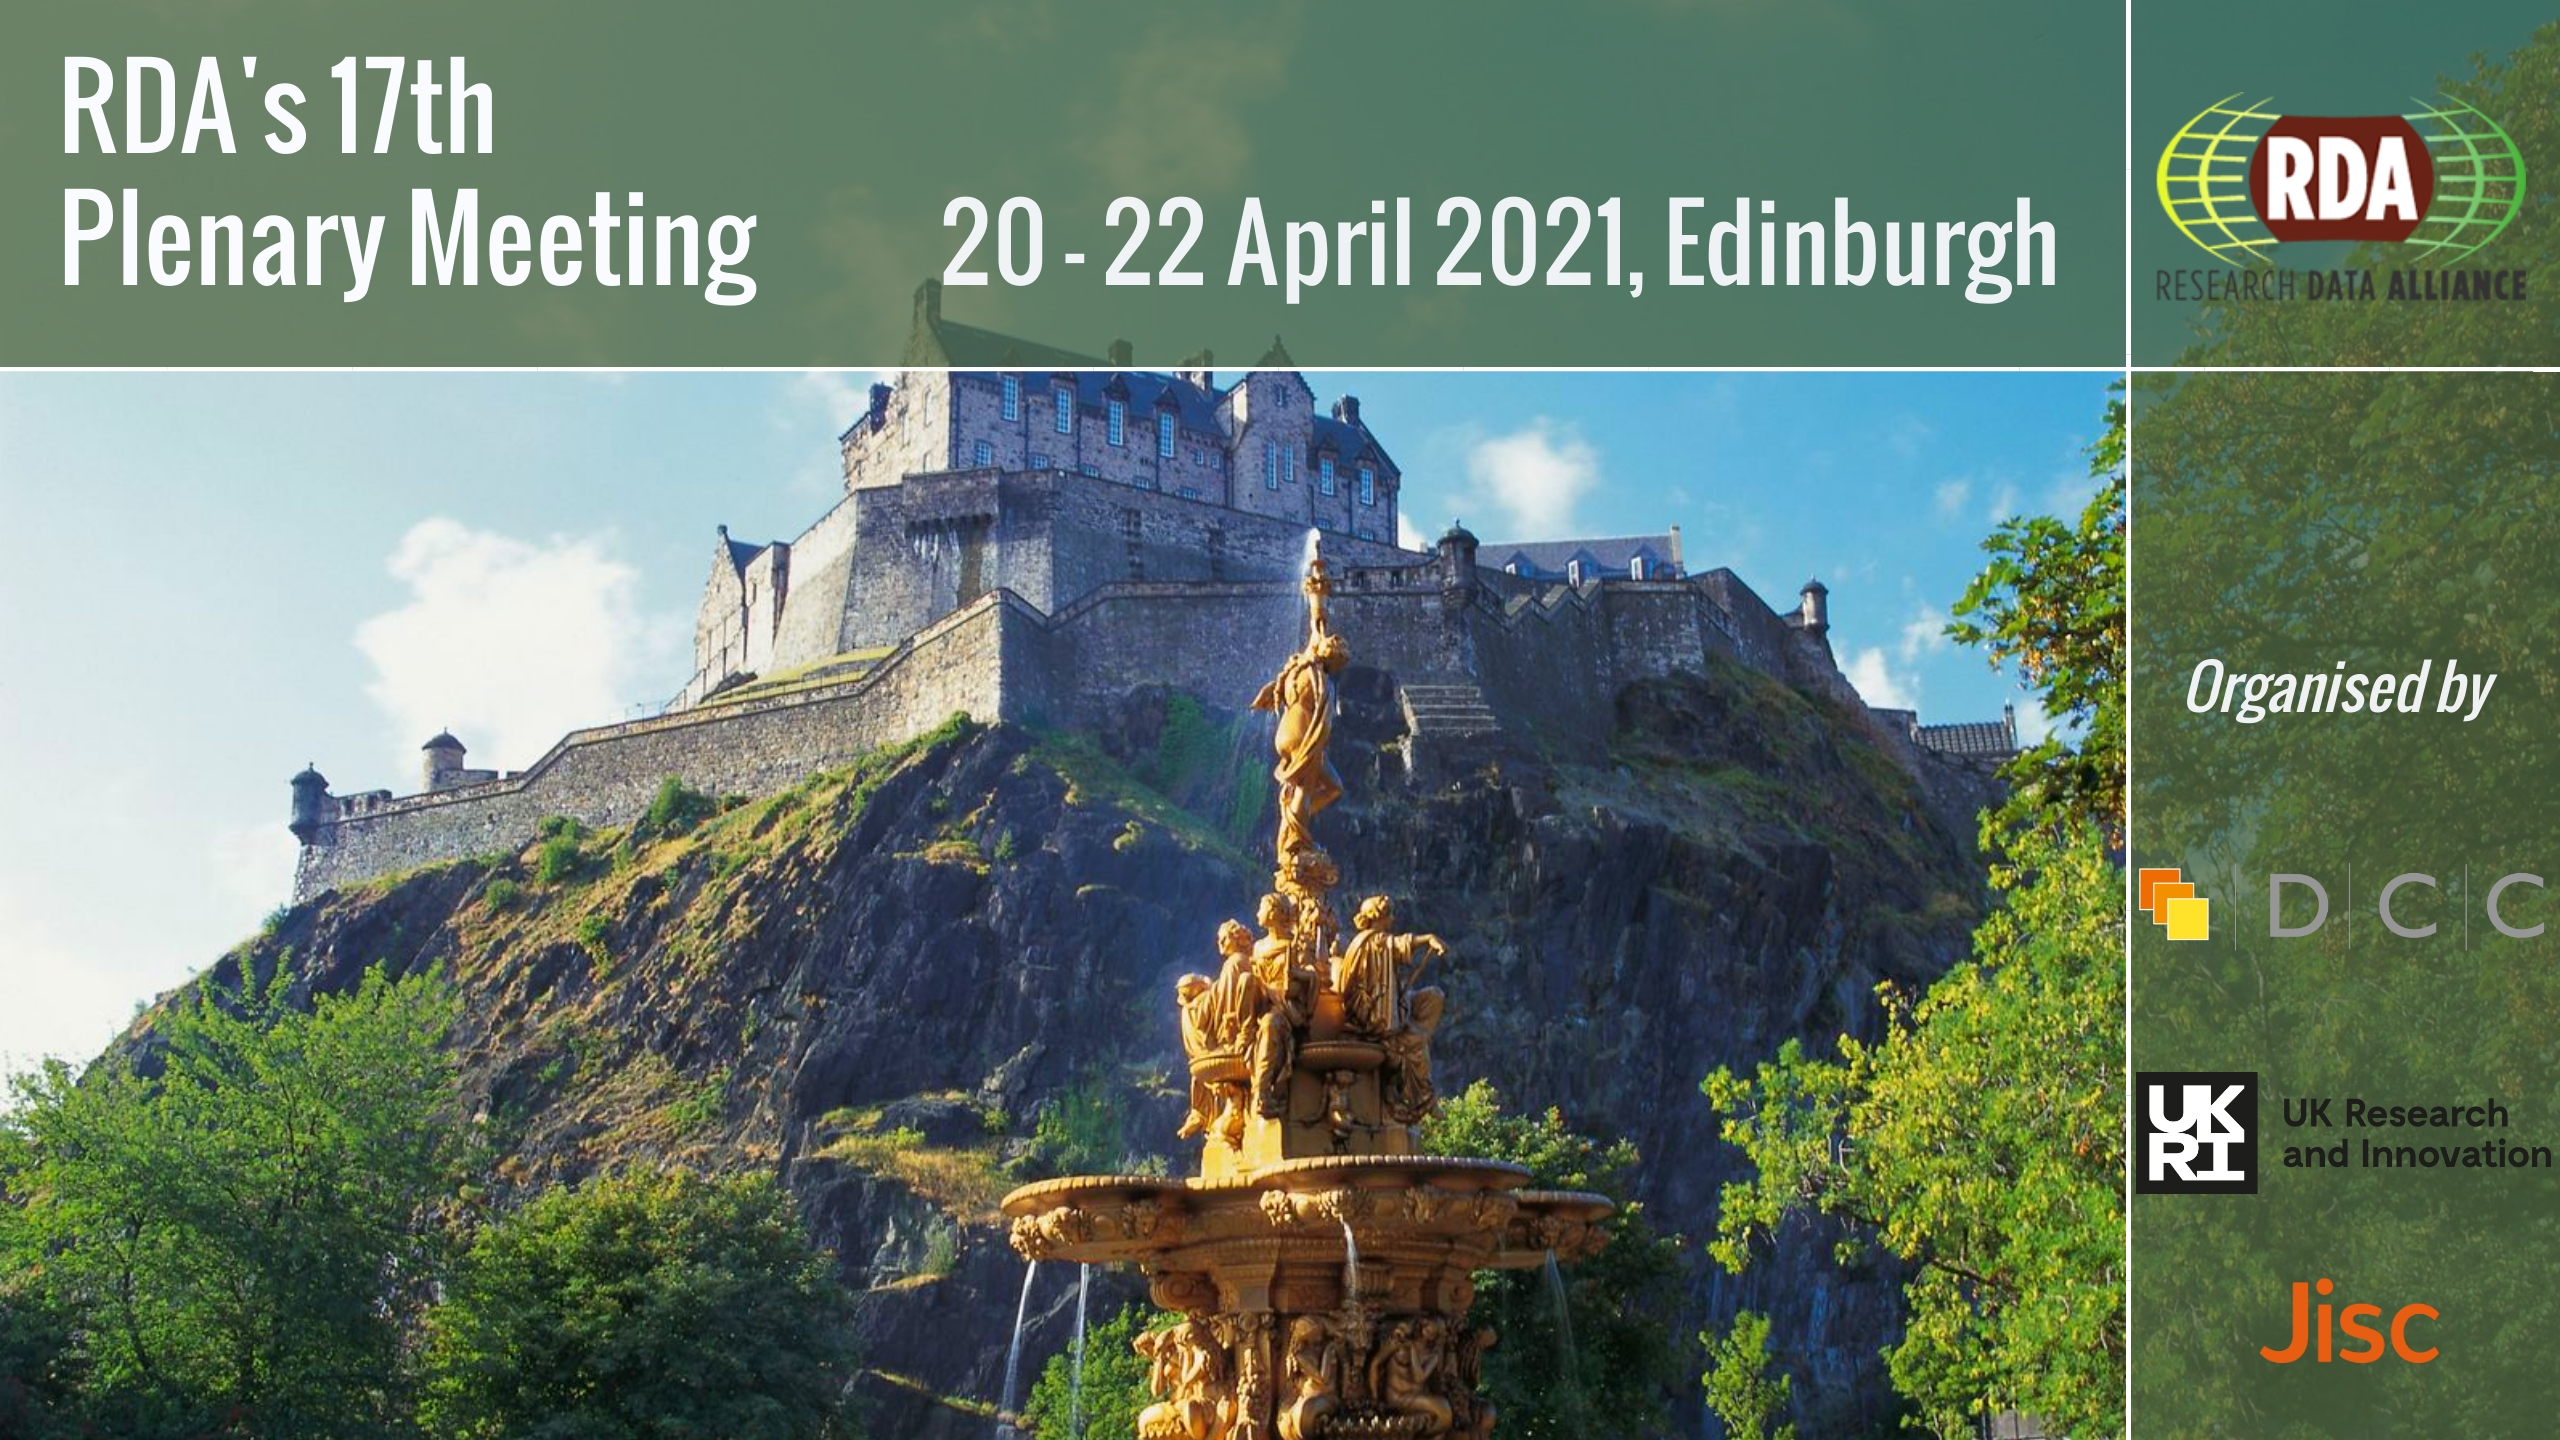 RDA P17 News: Call for sessions, call for posters, speaker spotlight and more